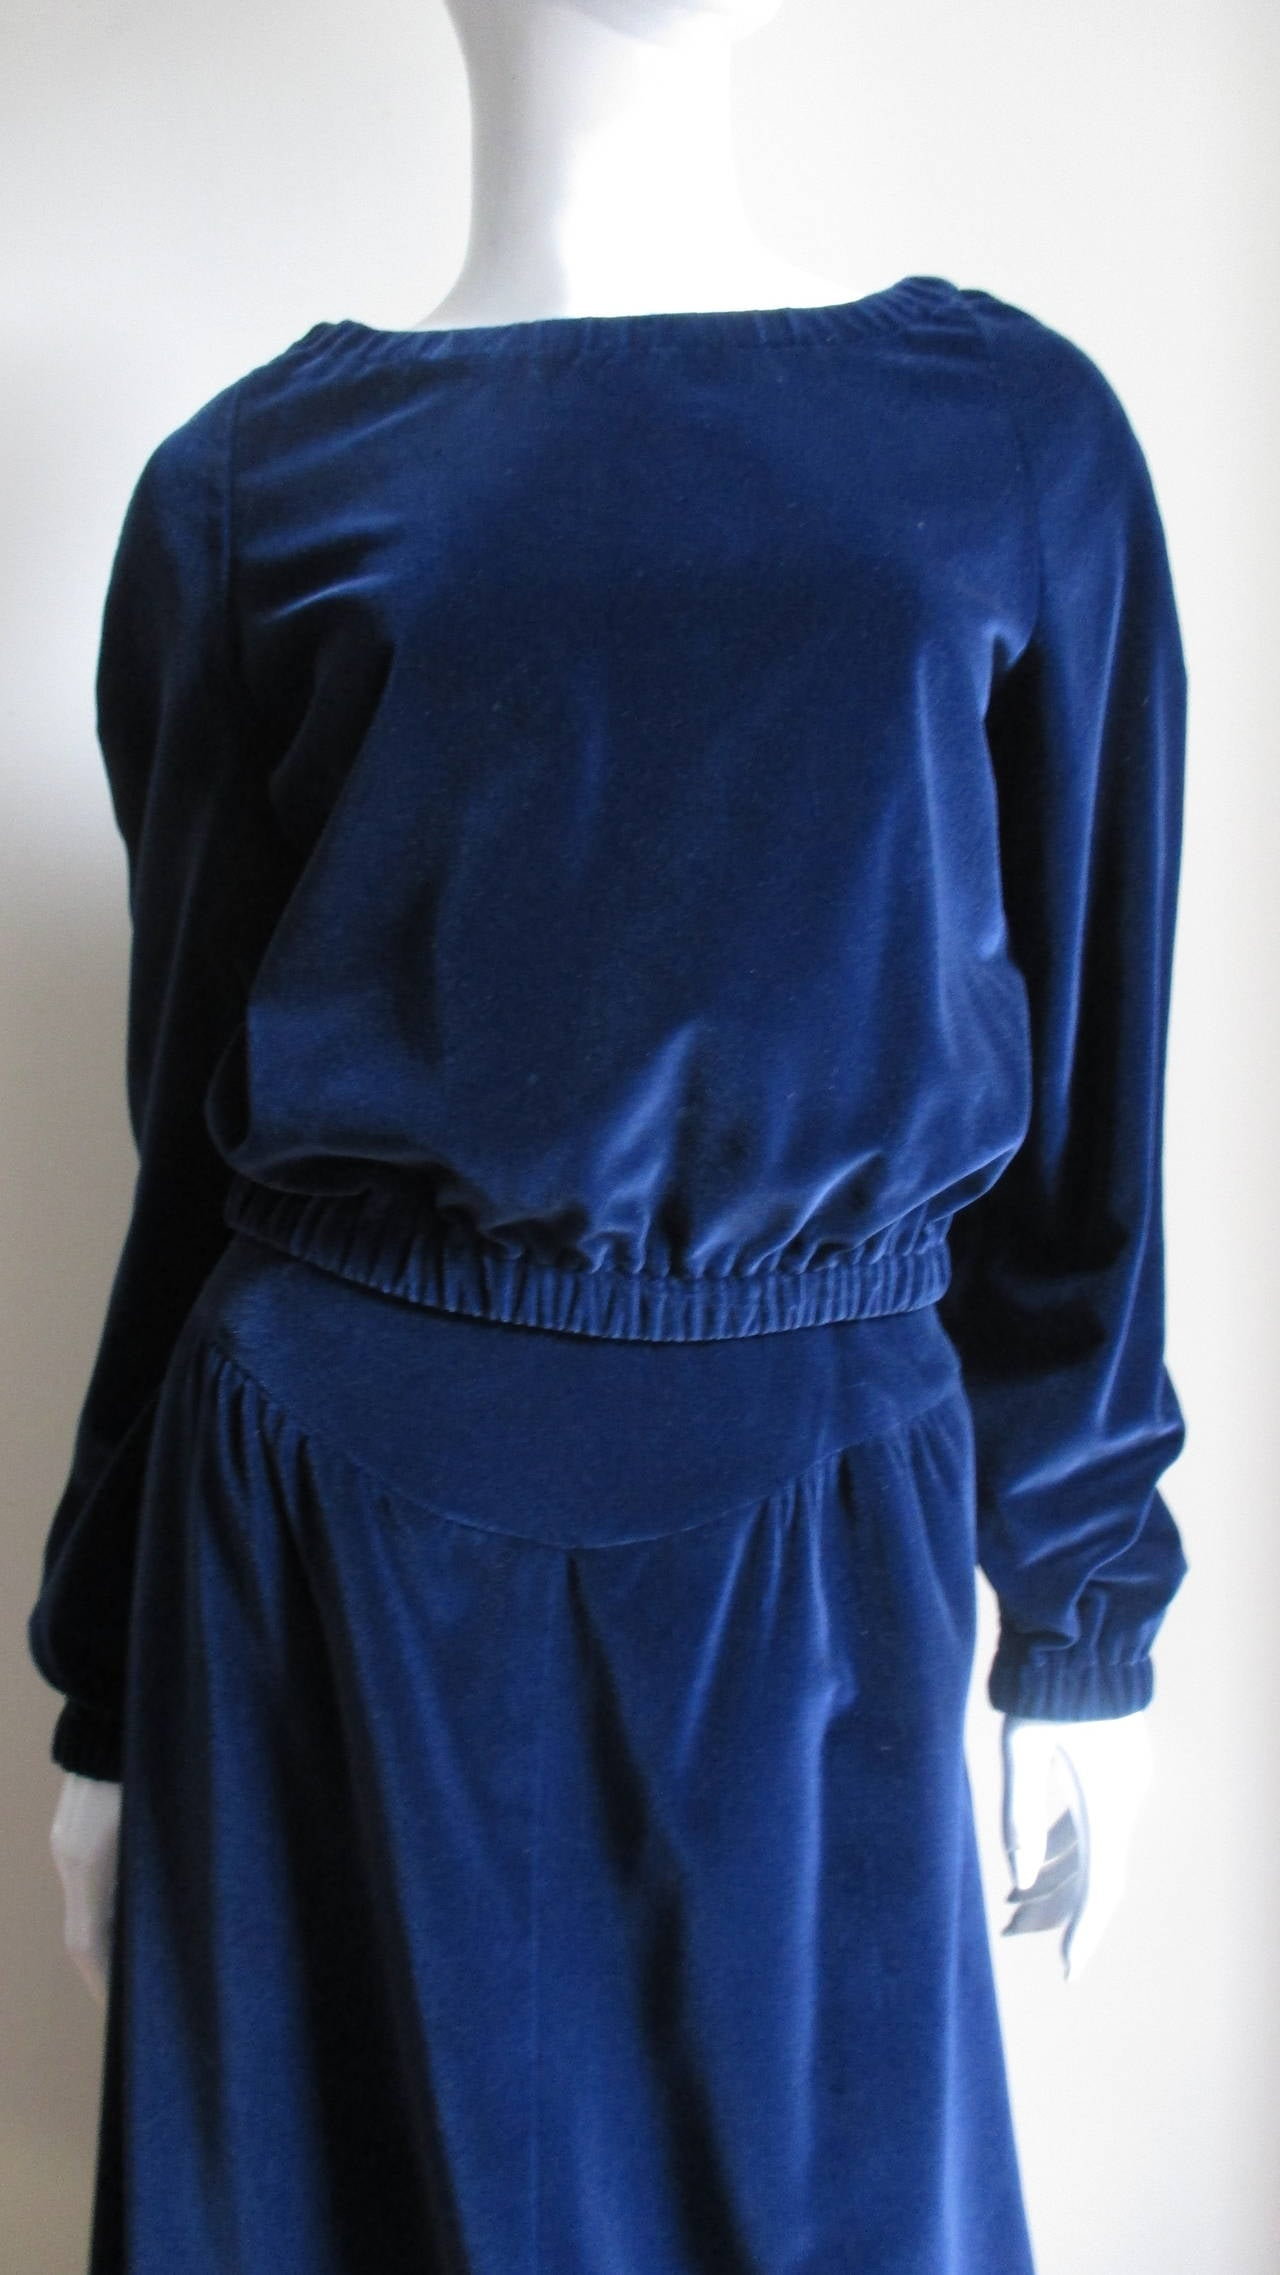 Two piece velvet set from Courreges in between sapphire and navy blue  in color.  Maxi skirt is gathered into a curved yoke front and back. The bateau neck blouson style top has elastic at raglan sleeve wrists, waist and neck. The top slips on over